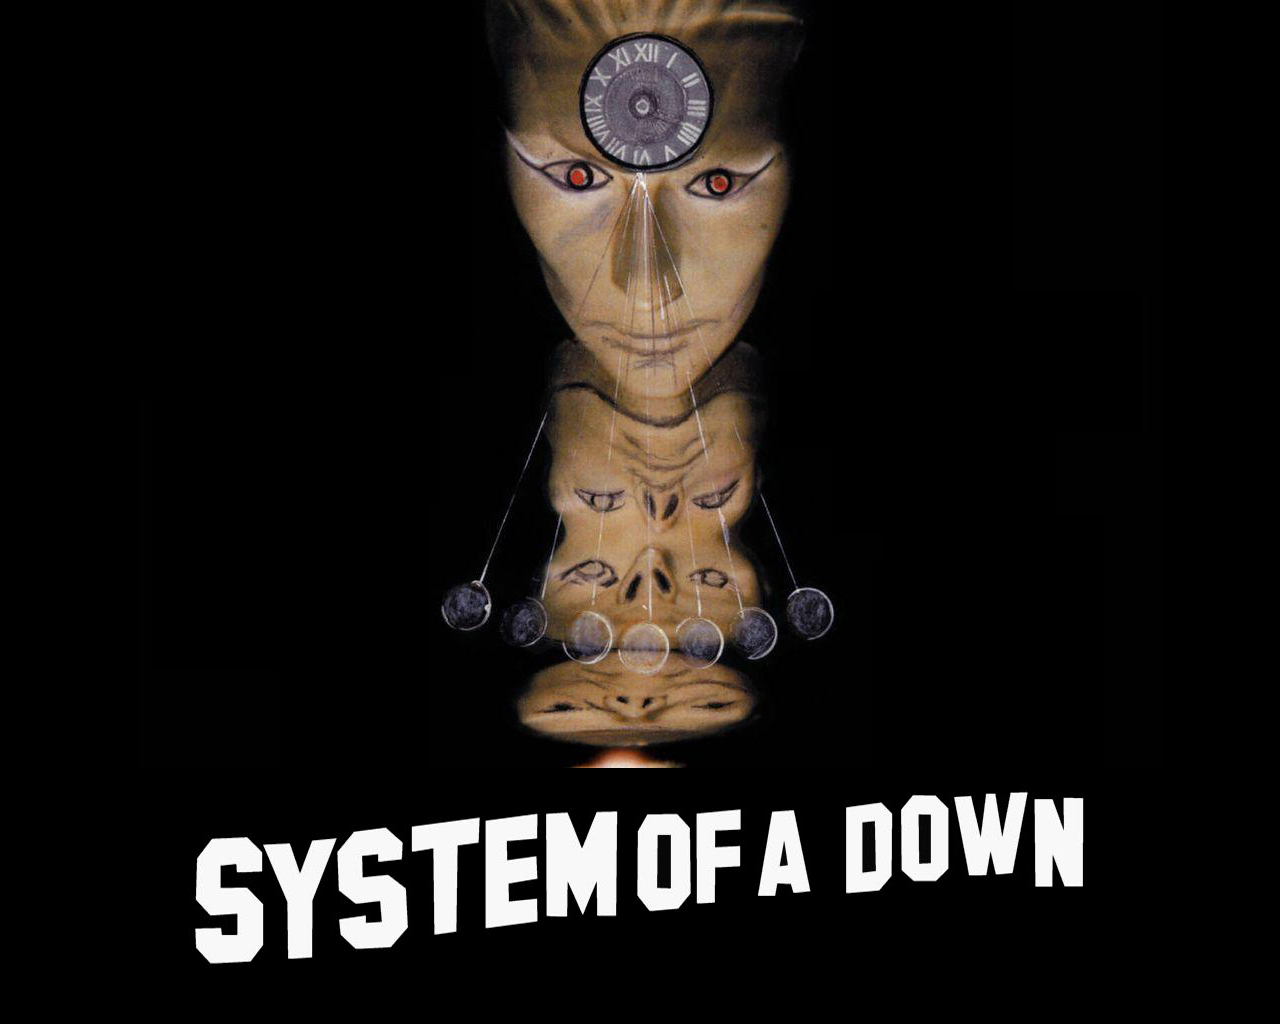 System Of A Down Computer Wallpapers Desktop Backgrounds 1280x1024 1280x1024